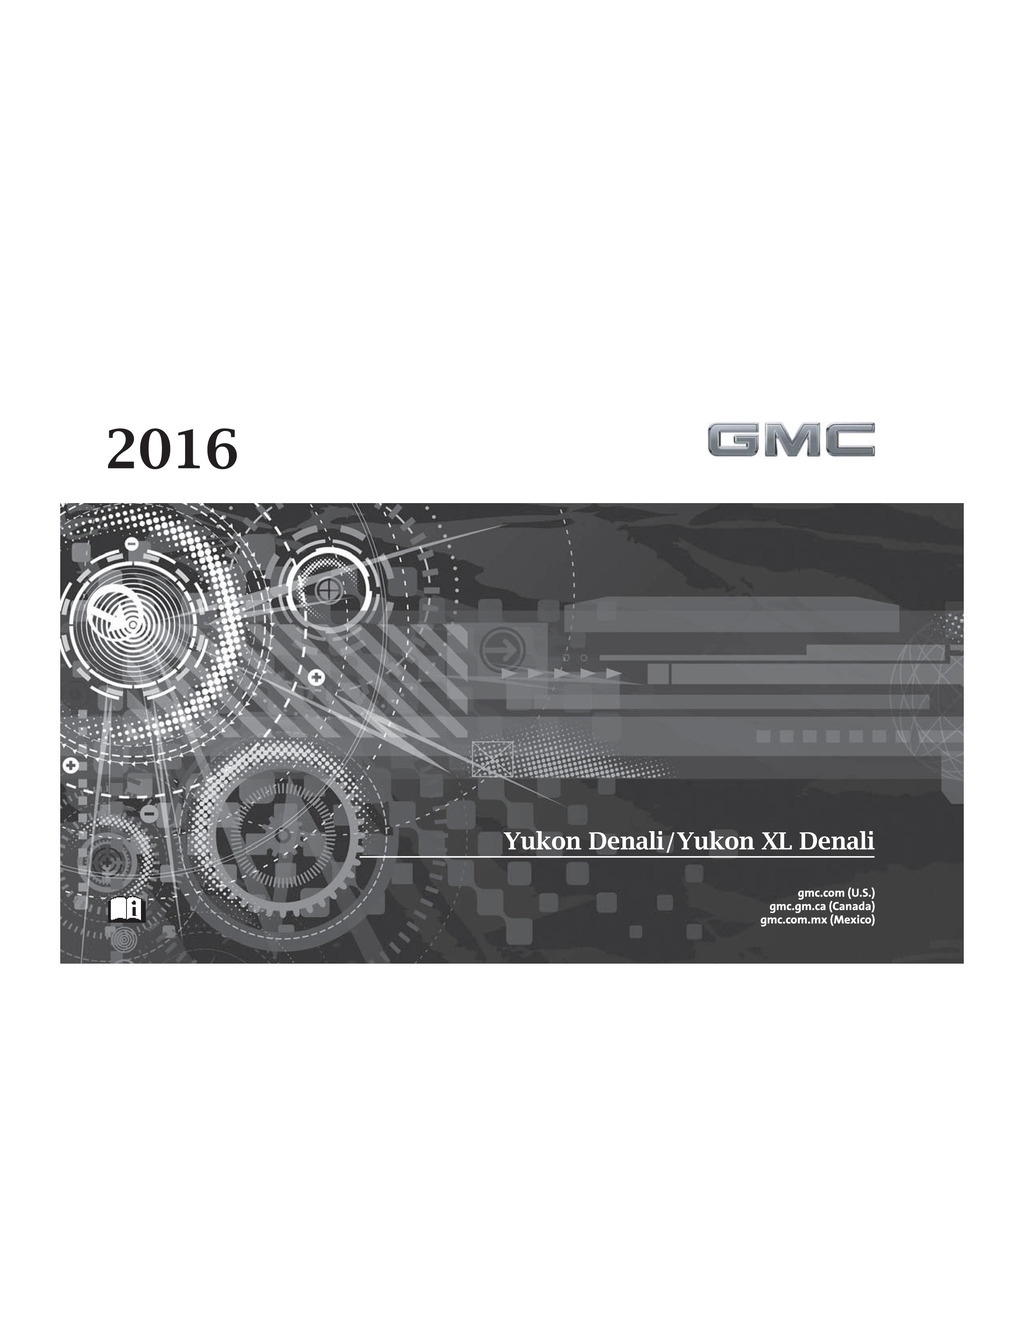 2016 GMC Yukon Denali owners manual